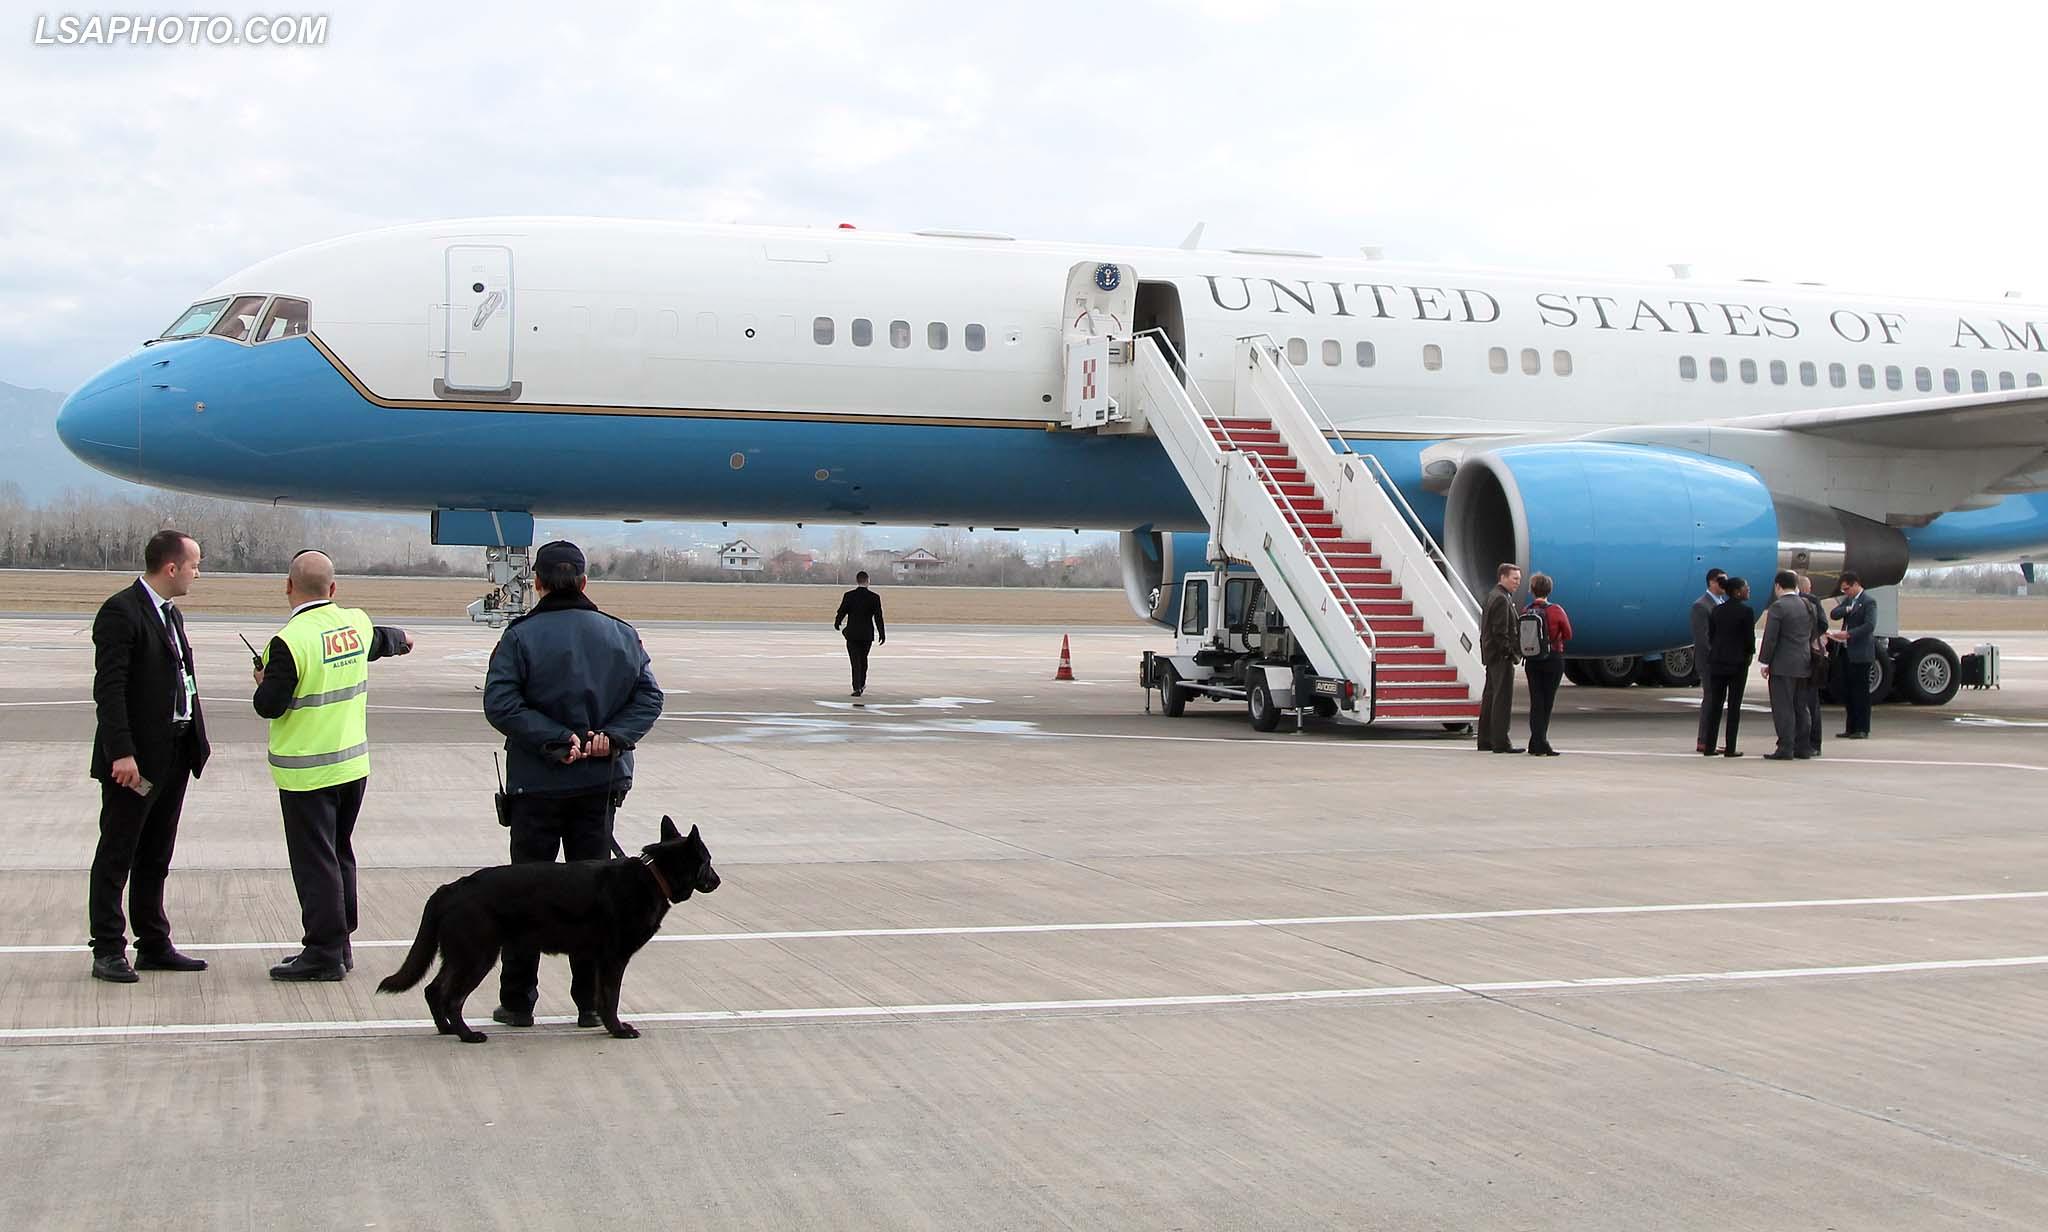 "Police me qen, duke vezhguar aeroportin ""Nene Tereza"", gjate vizites se Sekretarit Amerikan te Shtetit, John Kerry, i cili ndodhet per nje vizite zyrtare ne Tirane./r/n/r/nPolice with dog at the airport ""Mother Teresa"", during the visit of US Secretary of State, John Kerry. US Secretary of State is in a few hours visit to Tirana, to meet with senior government leaders to discuss Albania's further Euro-Atlantic integration and strong bilateral cooperation with the United States."